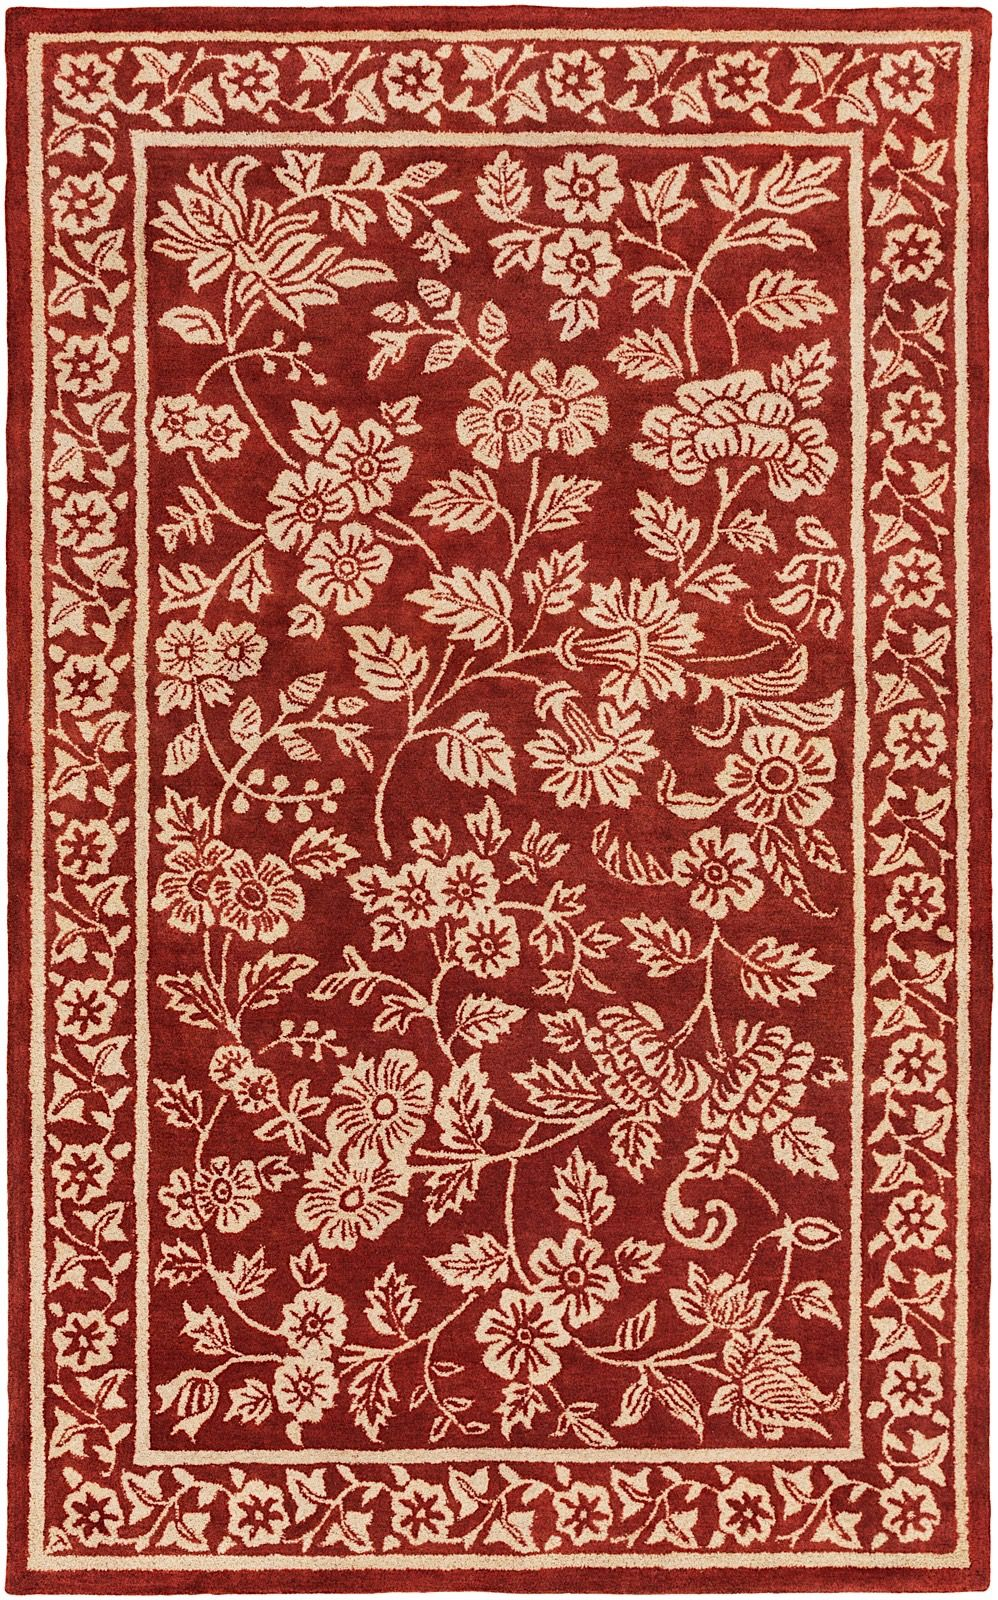 surya smithsonian country & floral area rug collection